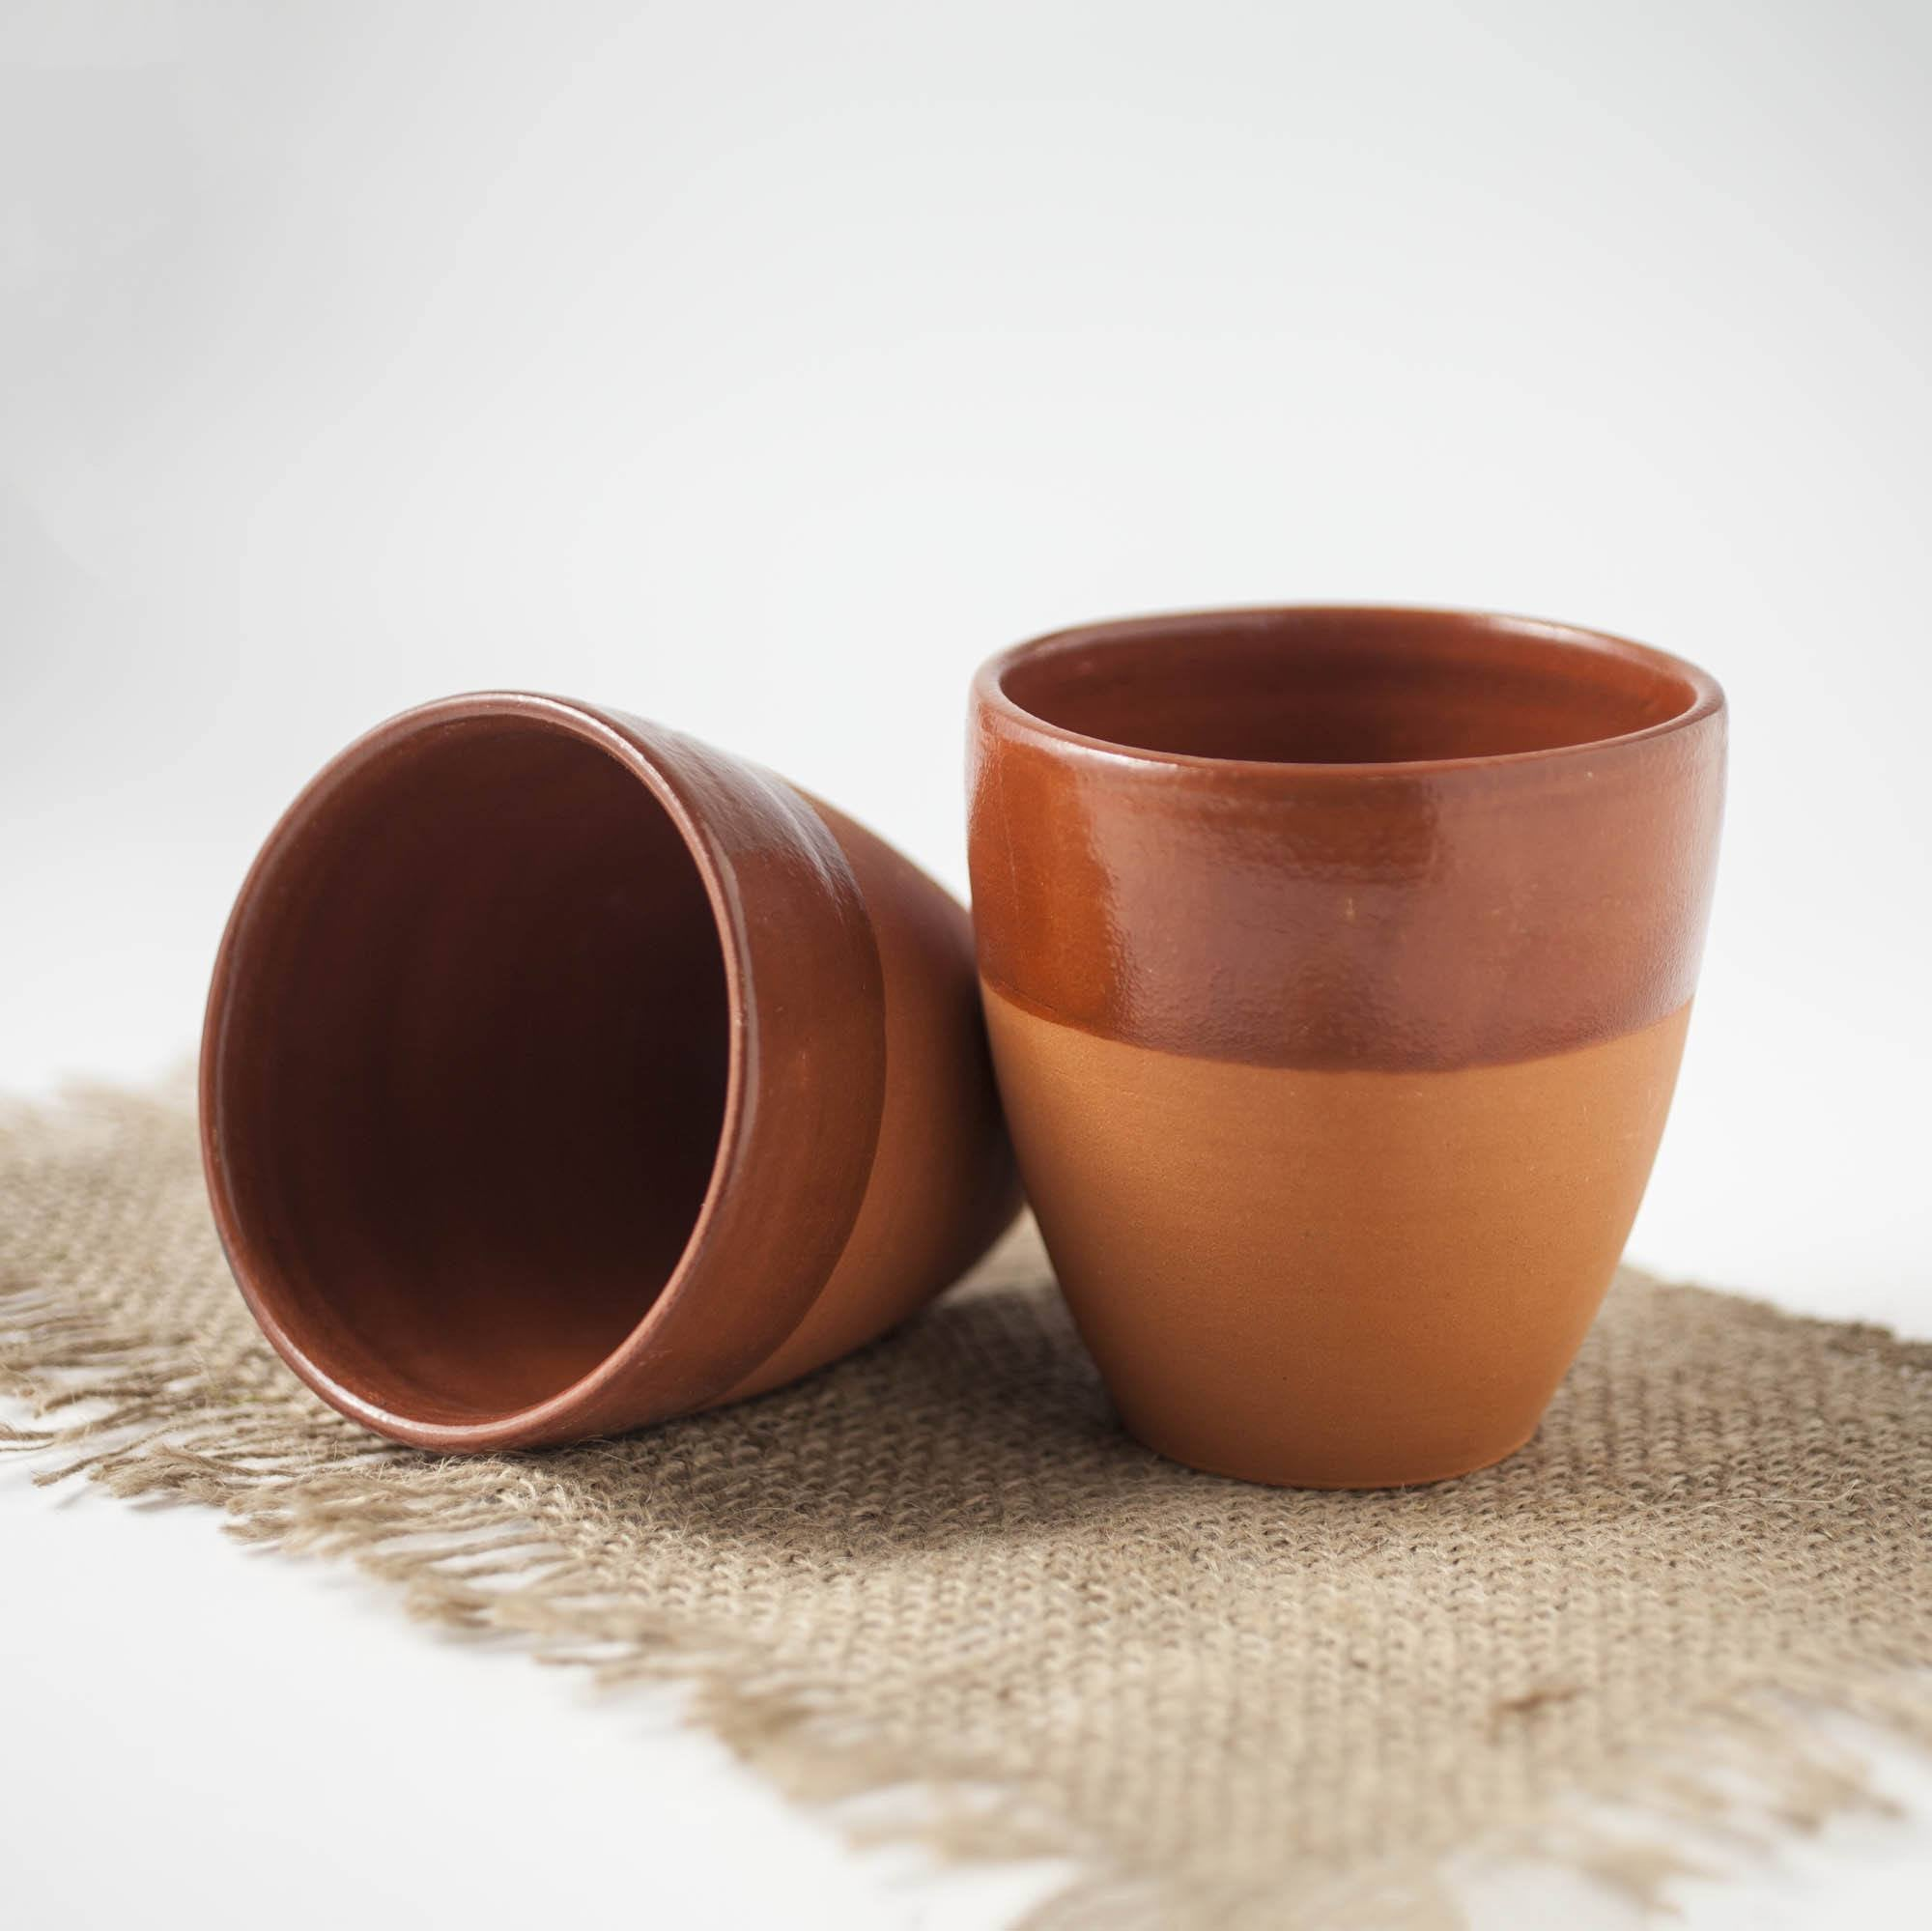 Biodegradeable Clay Chai Kulhar Cups